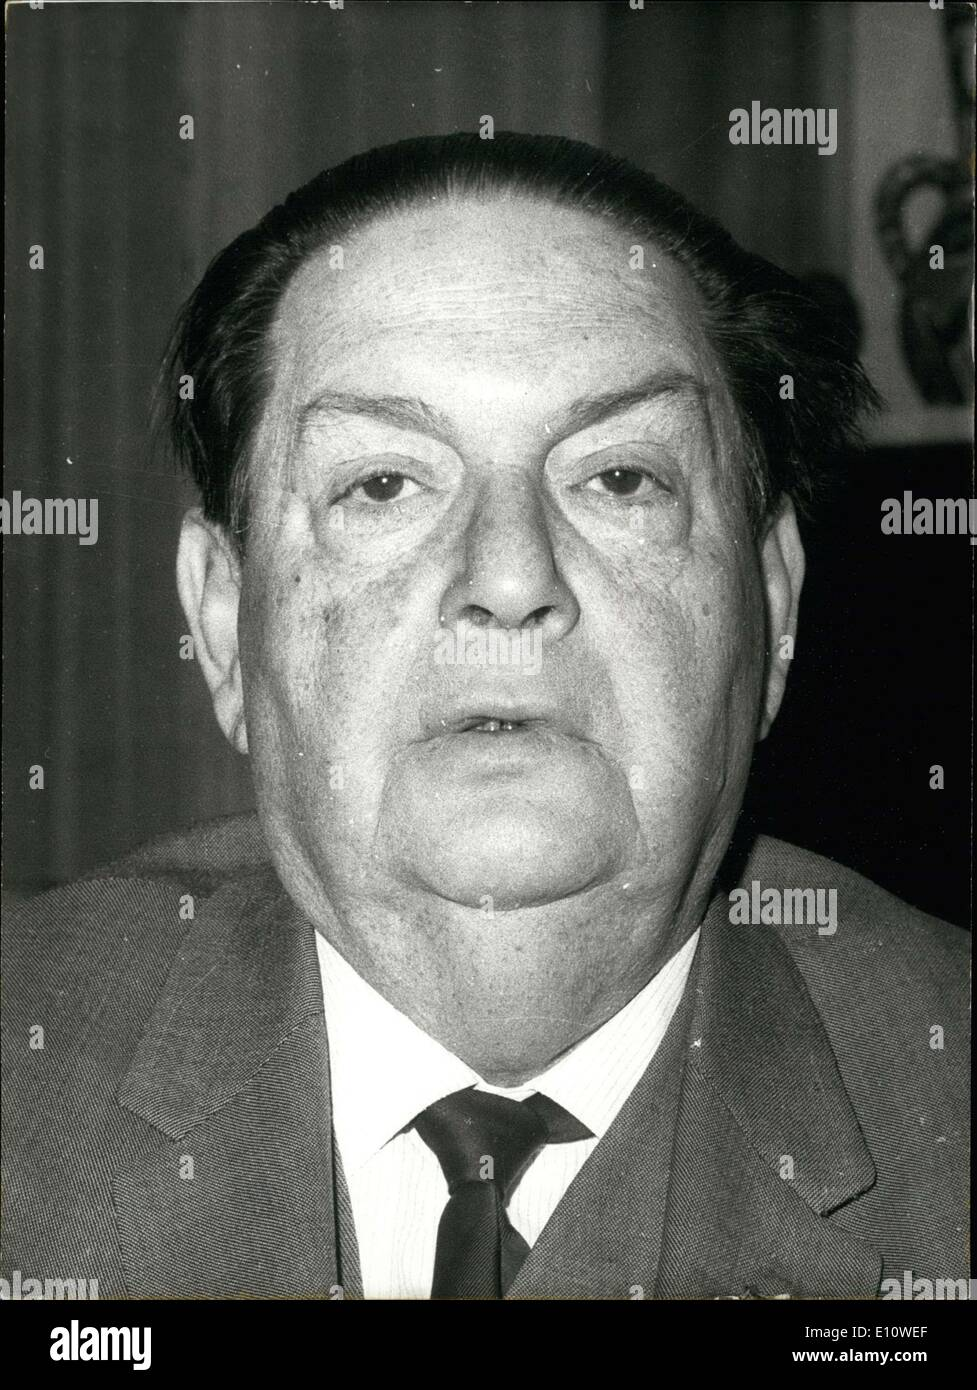 Jun. 25, 1974 - Milhaud was a famous composer who wrote 12 symphonies, 200 melodies, and more than 10 concertos during his career. He died in Geneva, Switzerland at 81 years old. - Stock Image